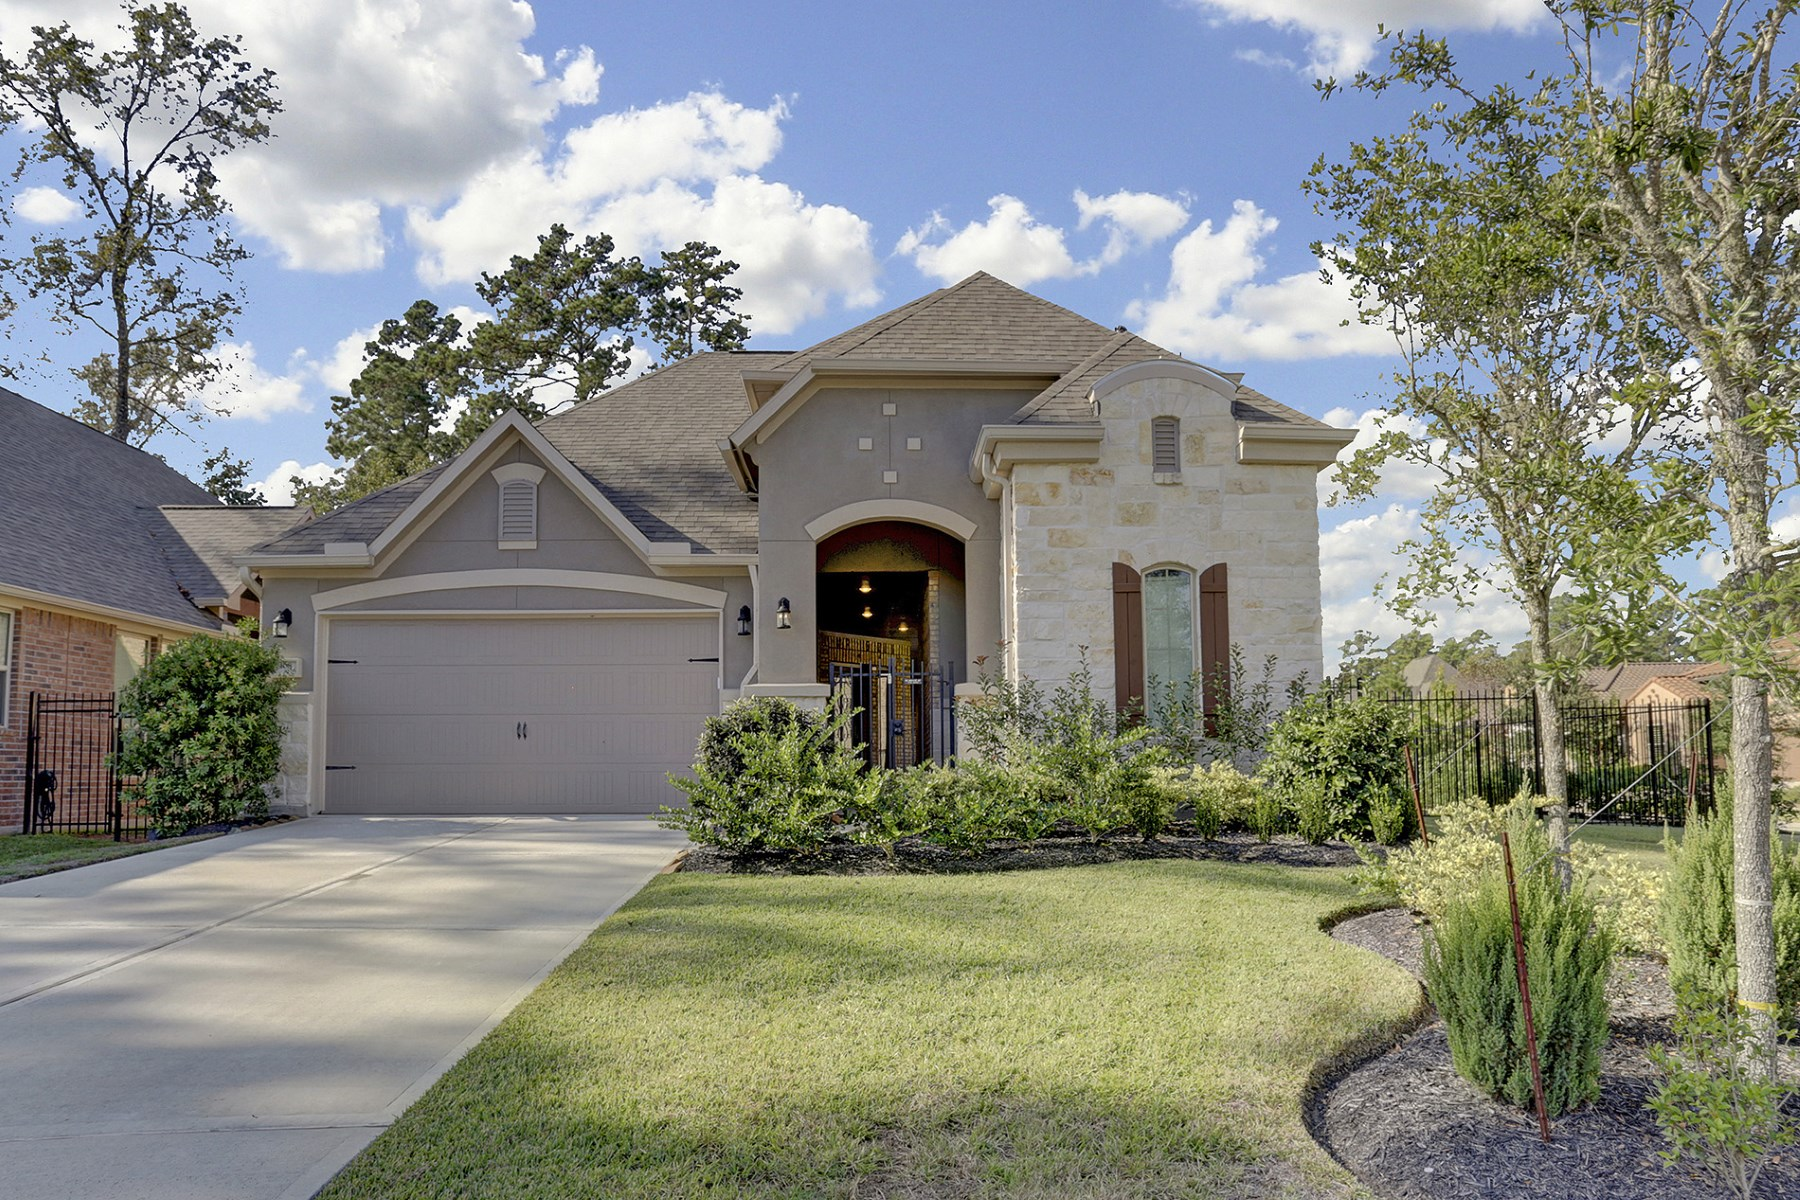 Single Family Home for Sale at 108 Sundown Ridge Place Tomball, Texas 77375 United States